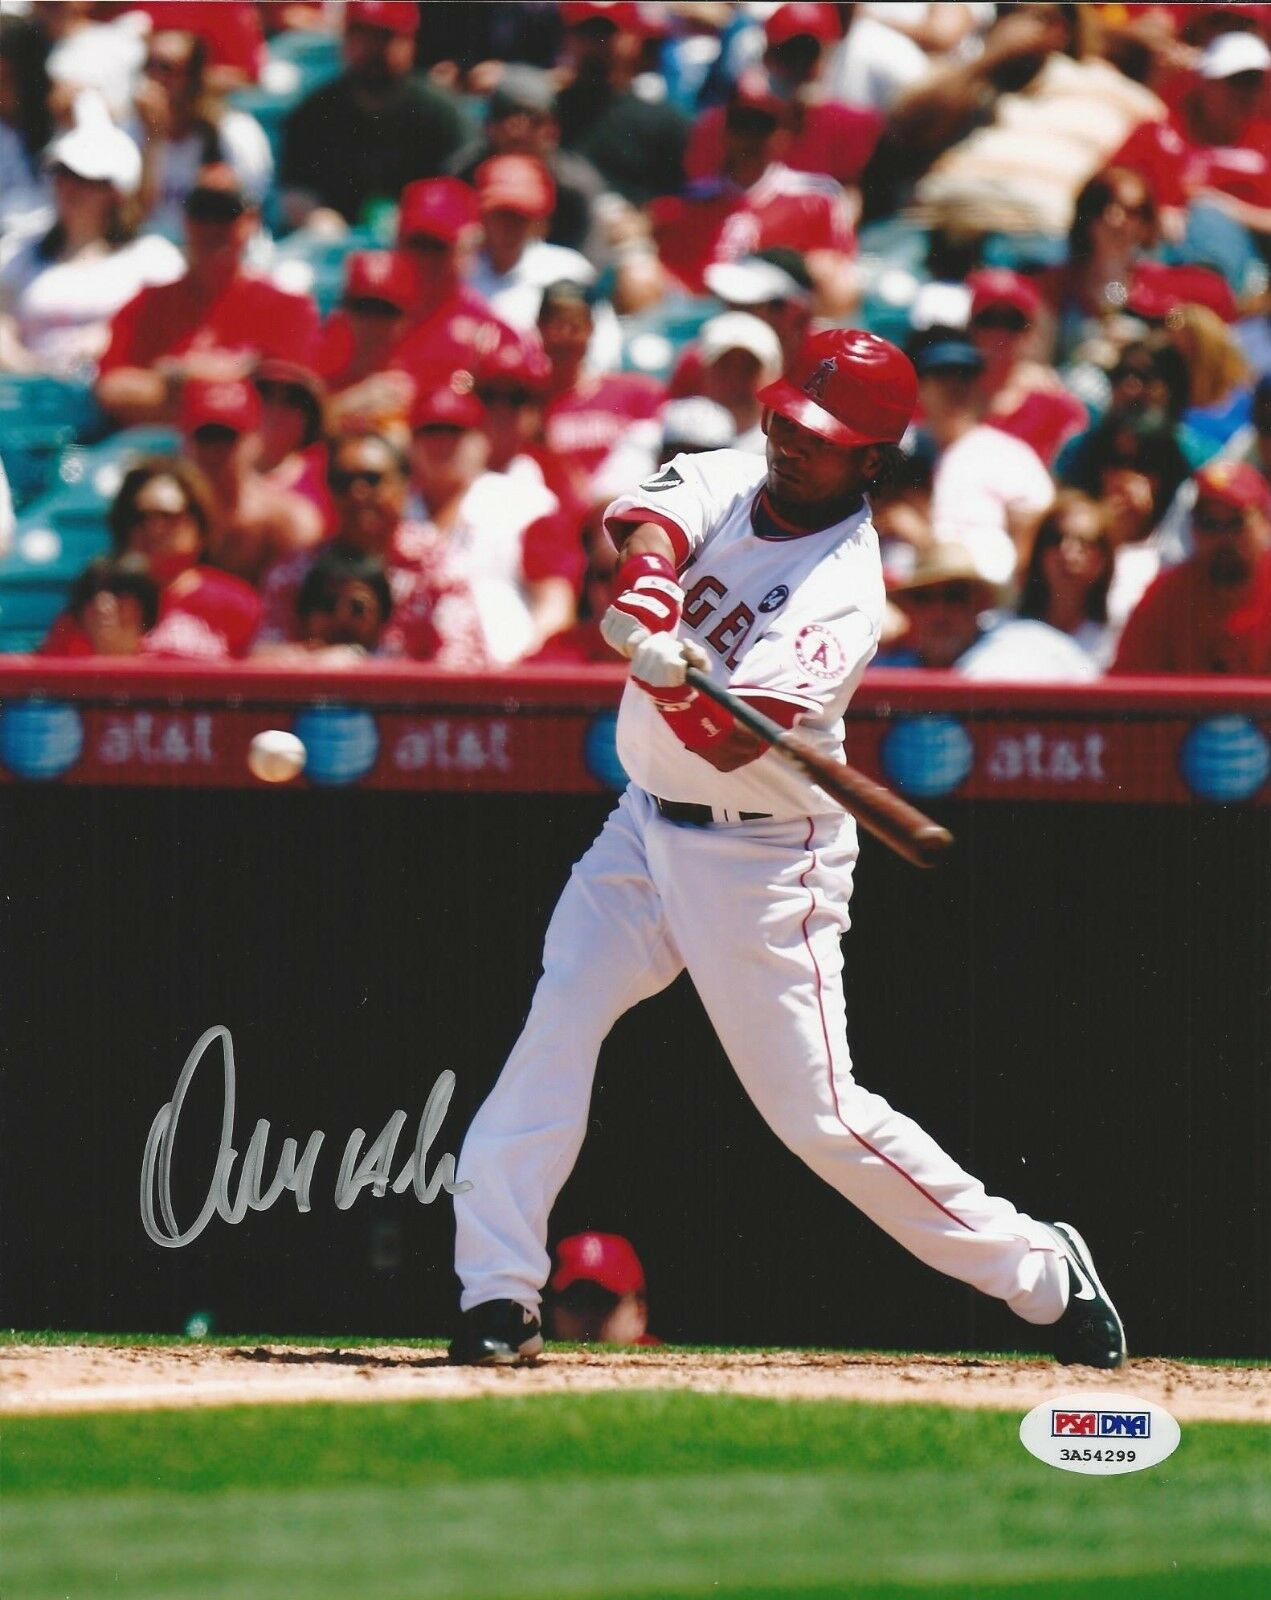 Erick Aybar Los Angeles Angels signed 8x10 photo PSA/DNA # 3A54299